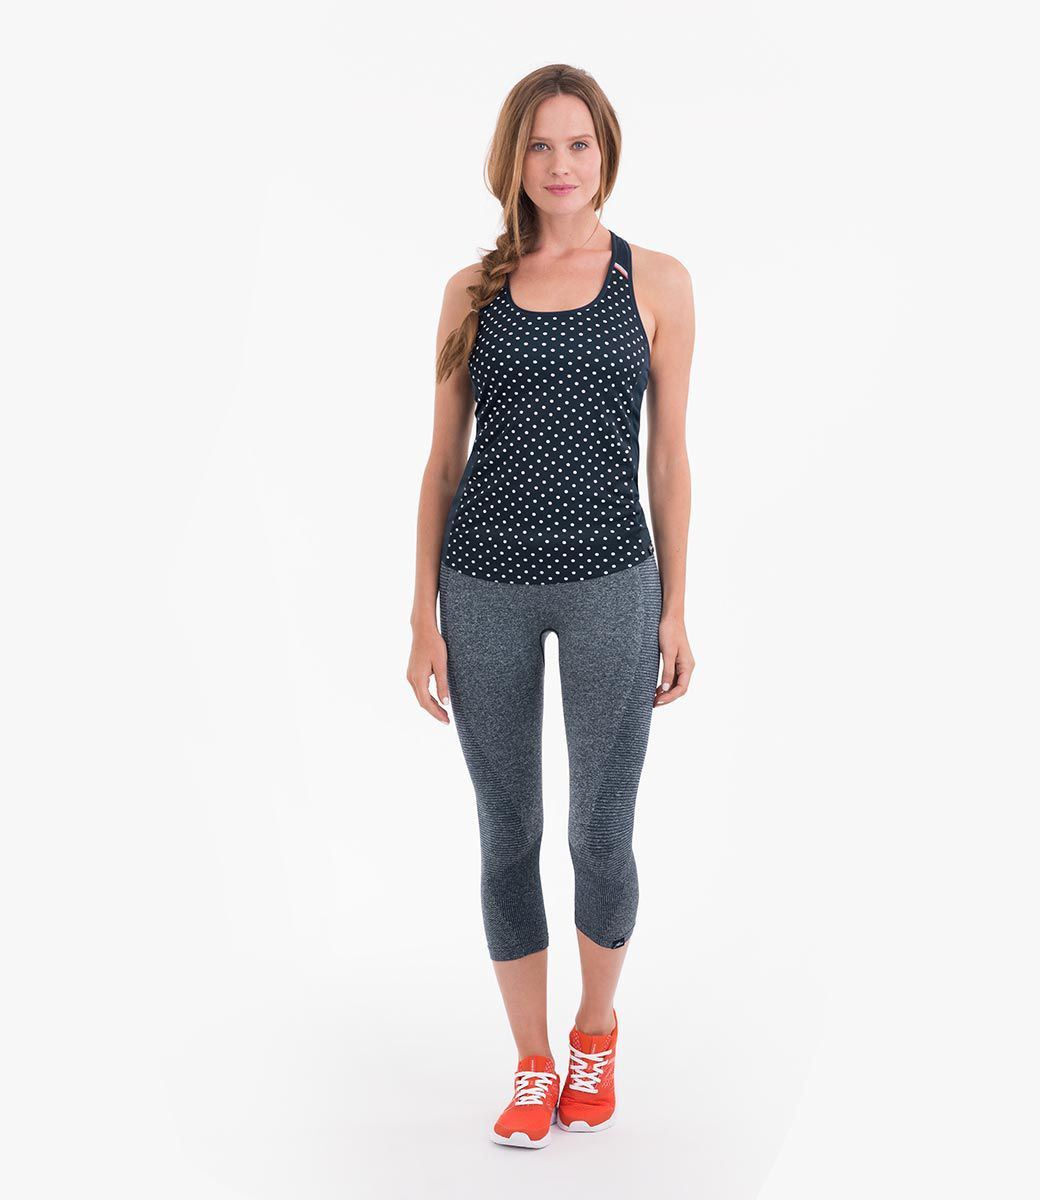 New Balance US Womens October JCrew Outfit 4,